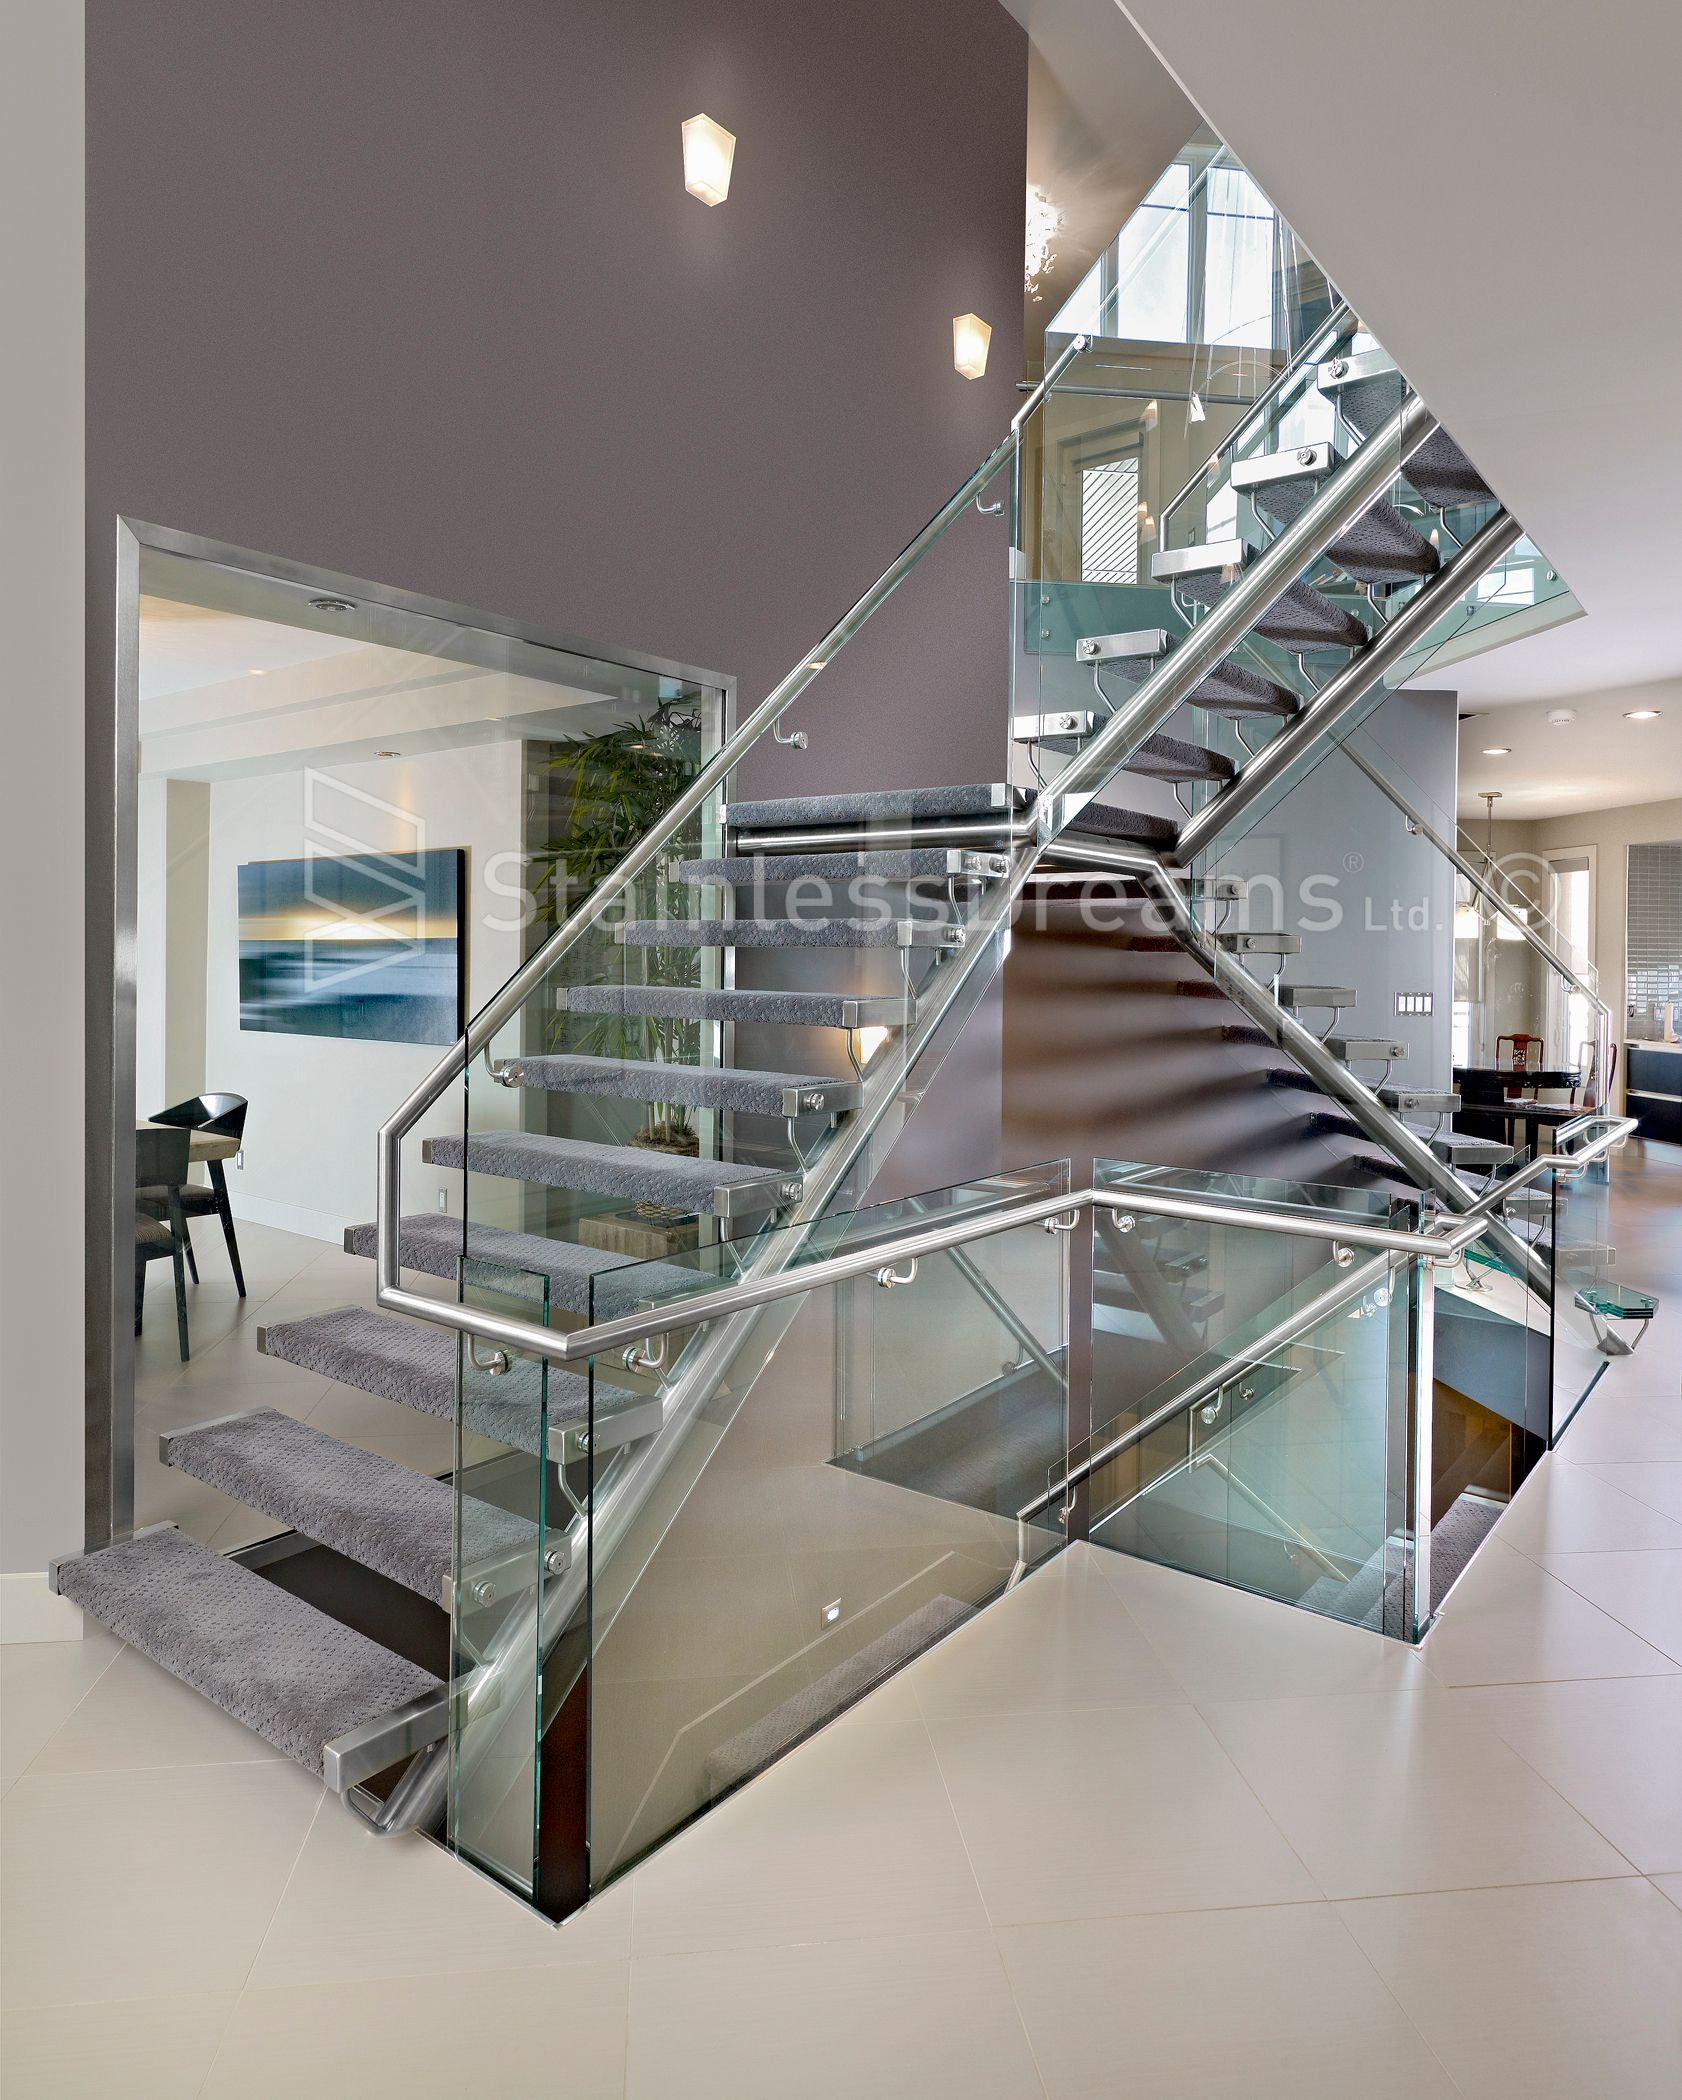 Tricky Structural Stainless Steel Staircase With Treads Attached To Glass